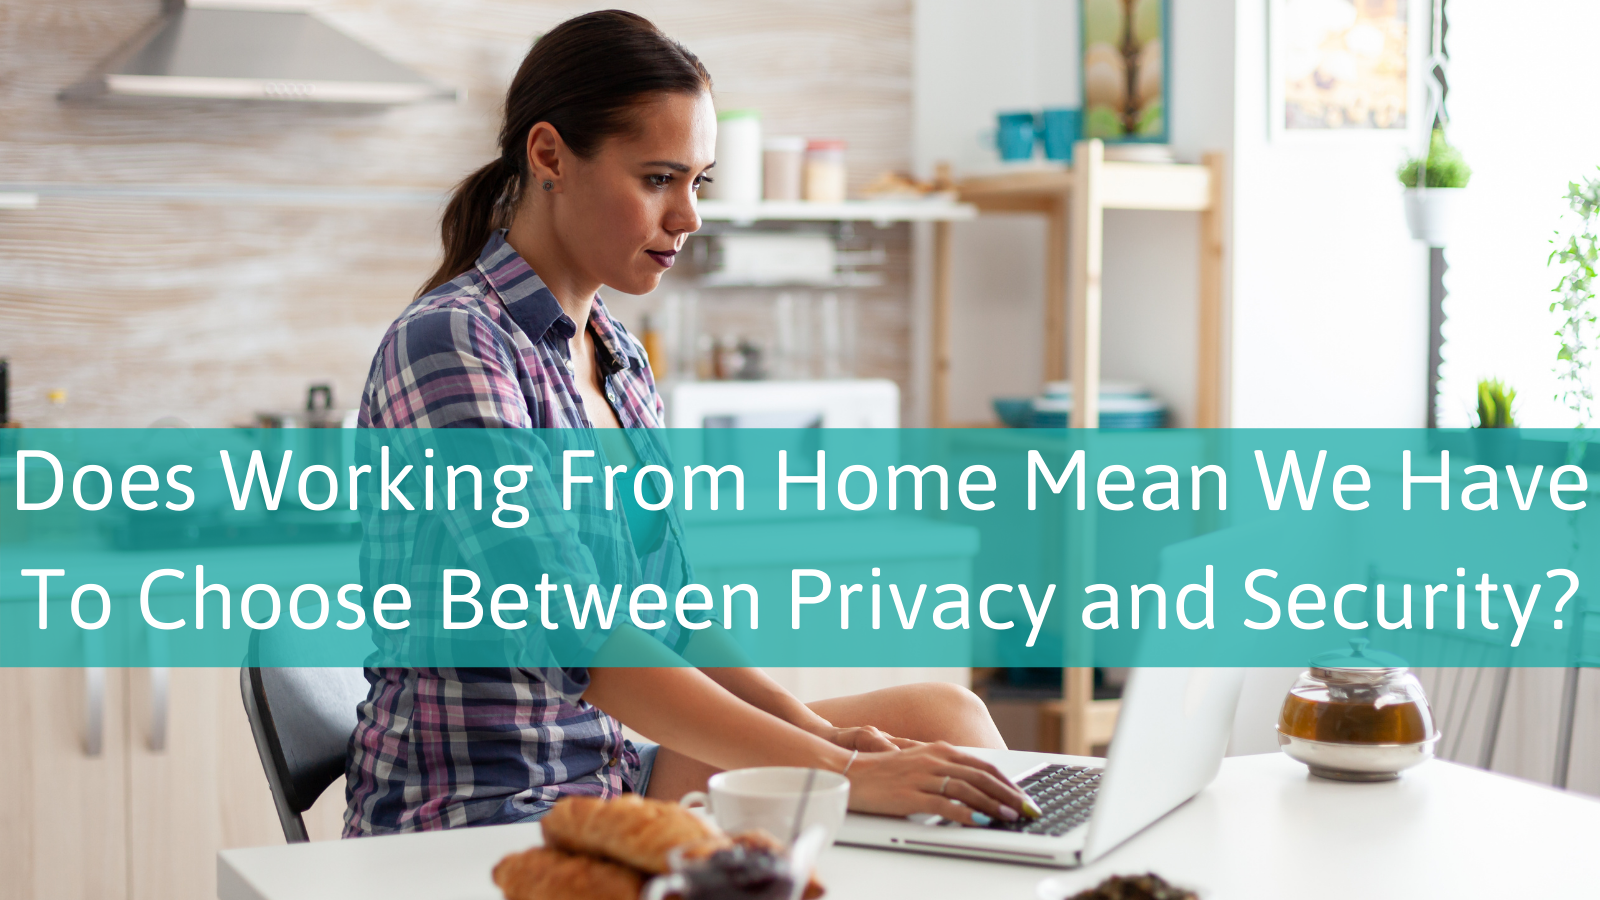 Does WFH Mean We Have to Choose Between Privacy and Security?